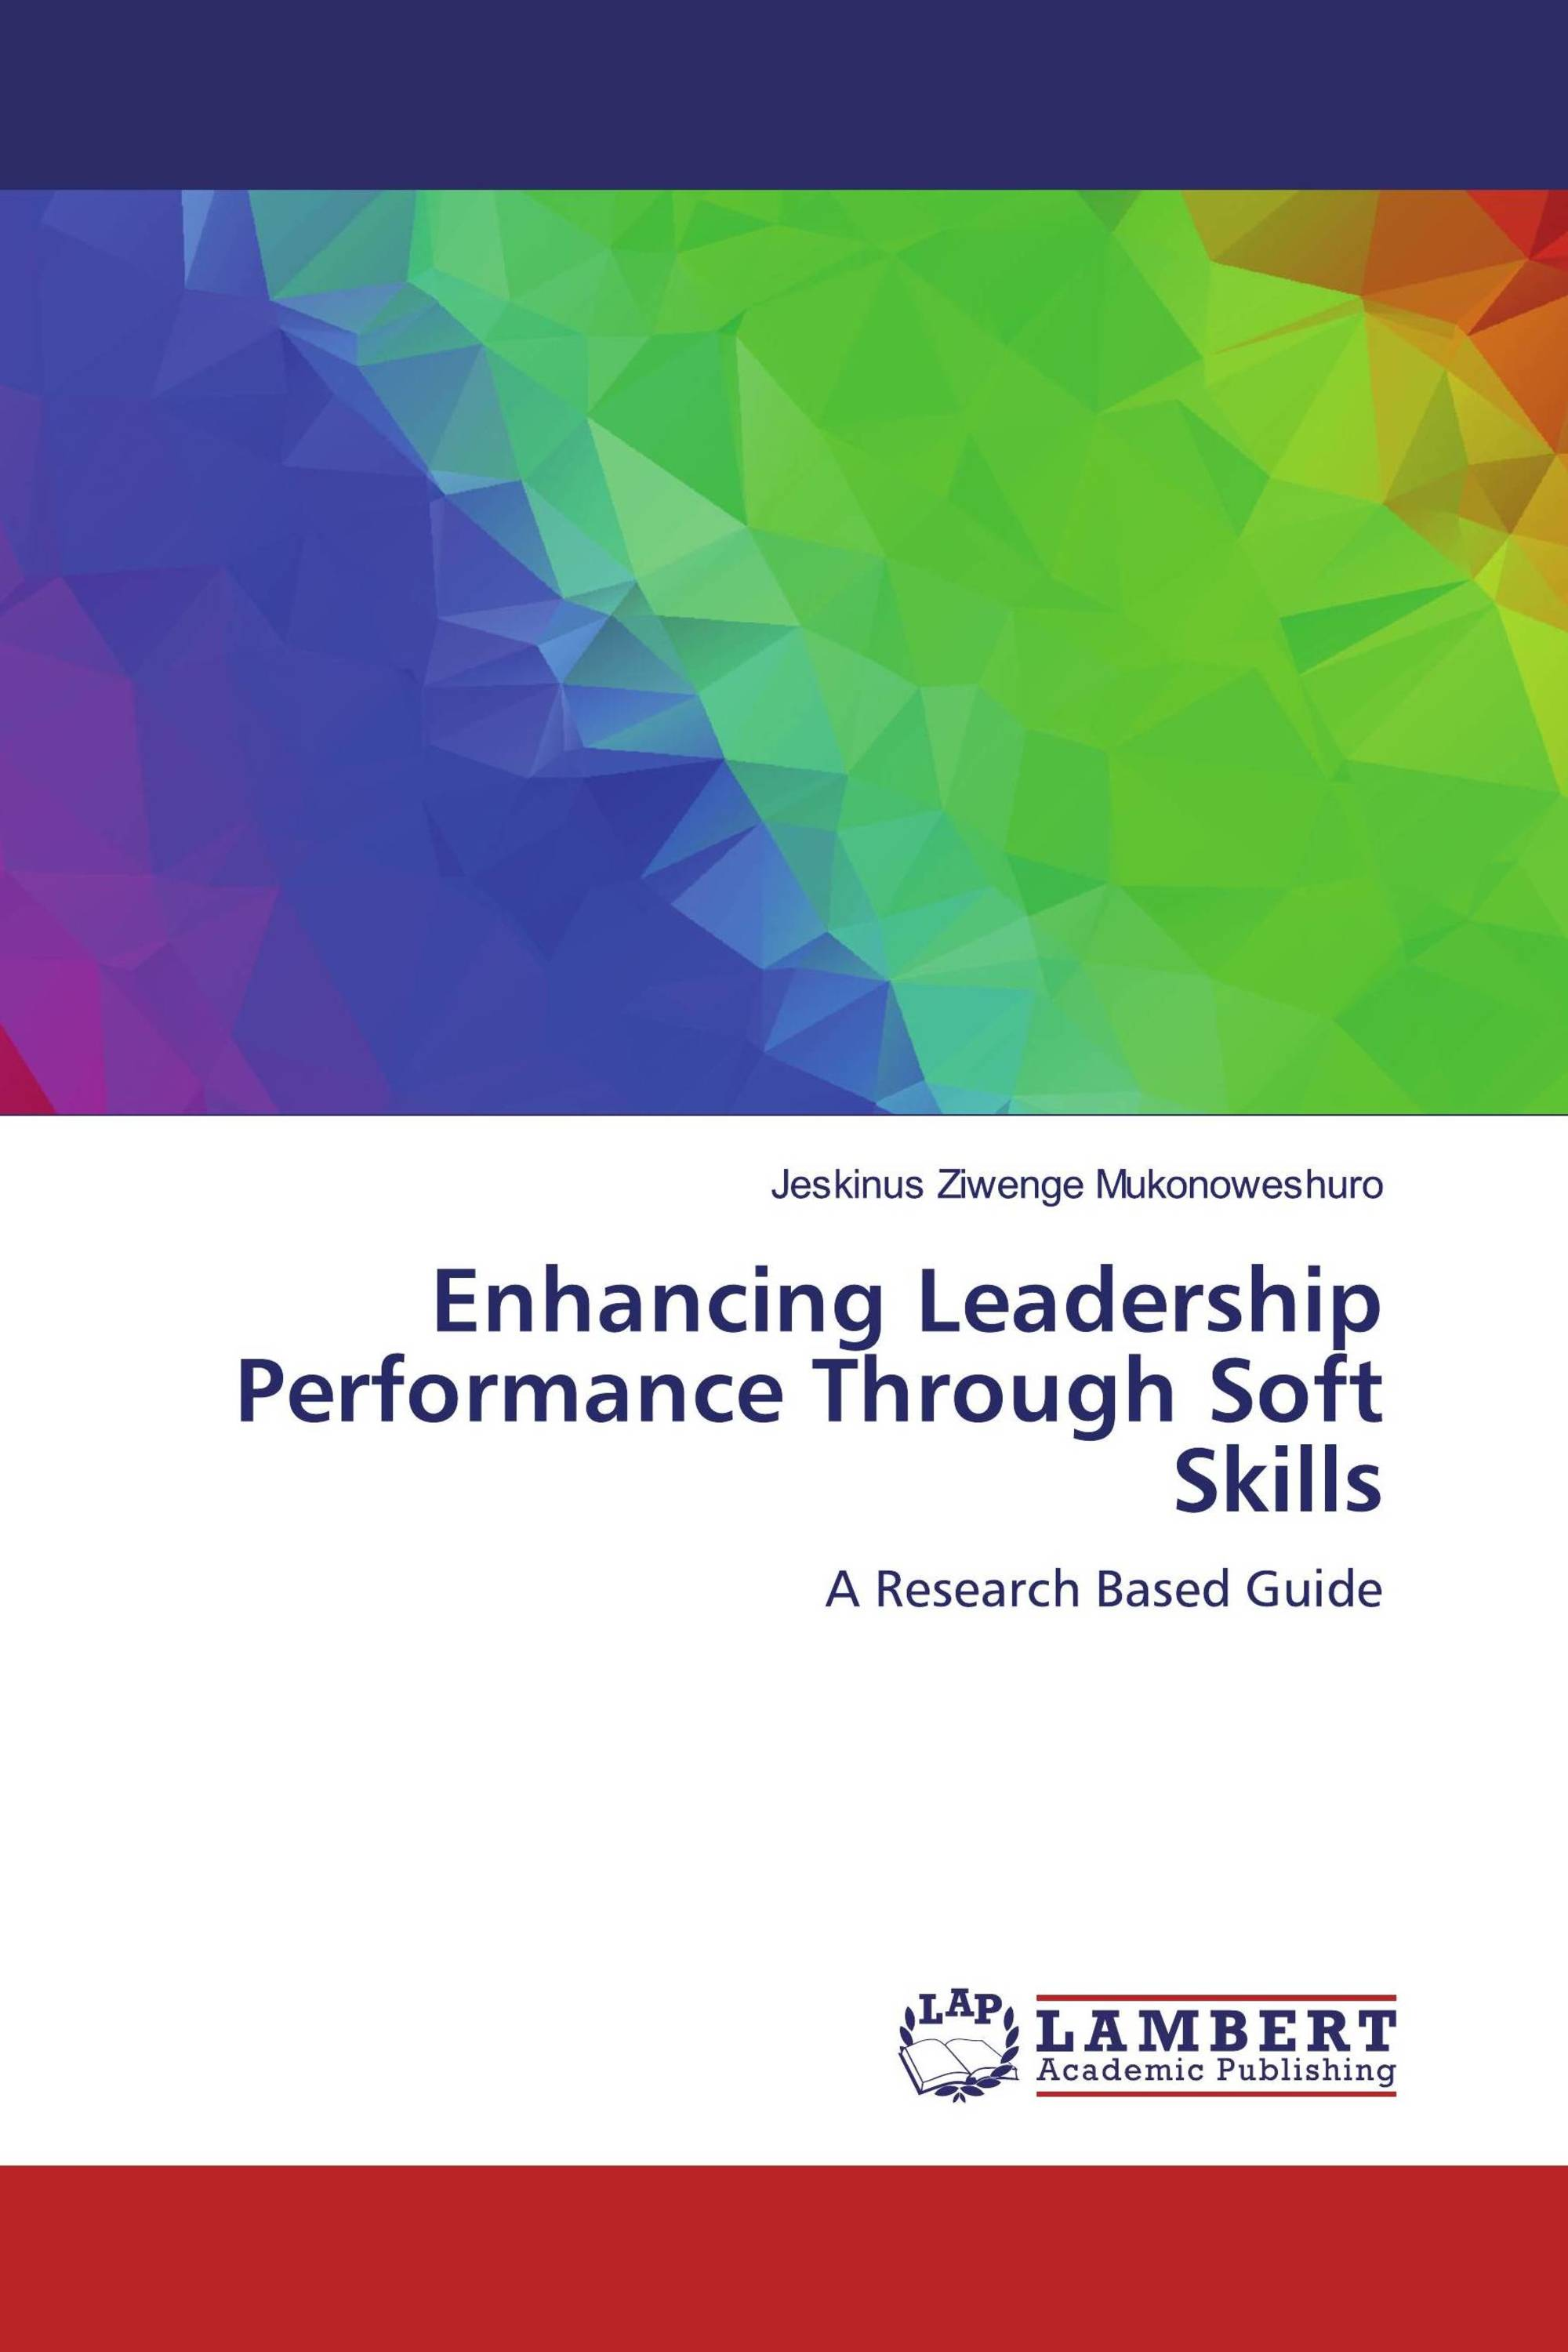 Enhancing Leadership Performance Through Soft Skills